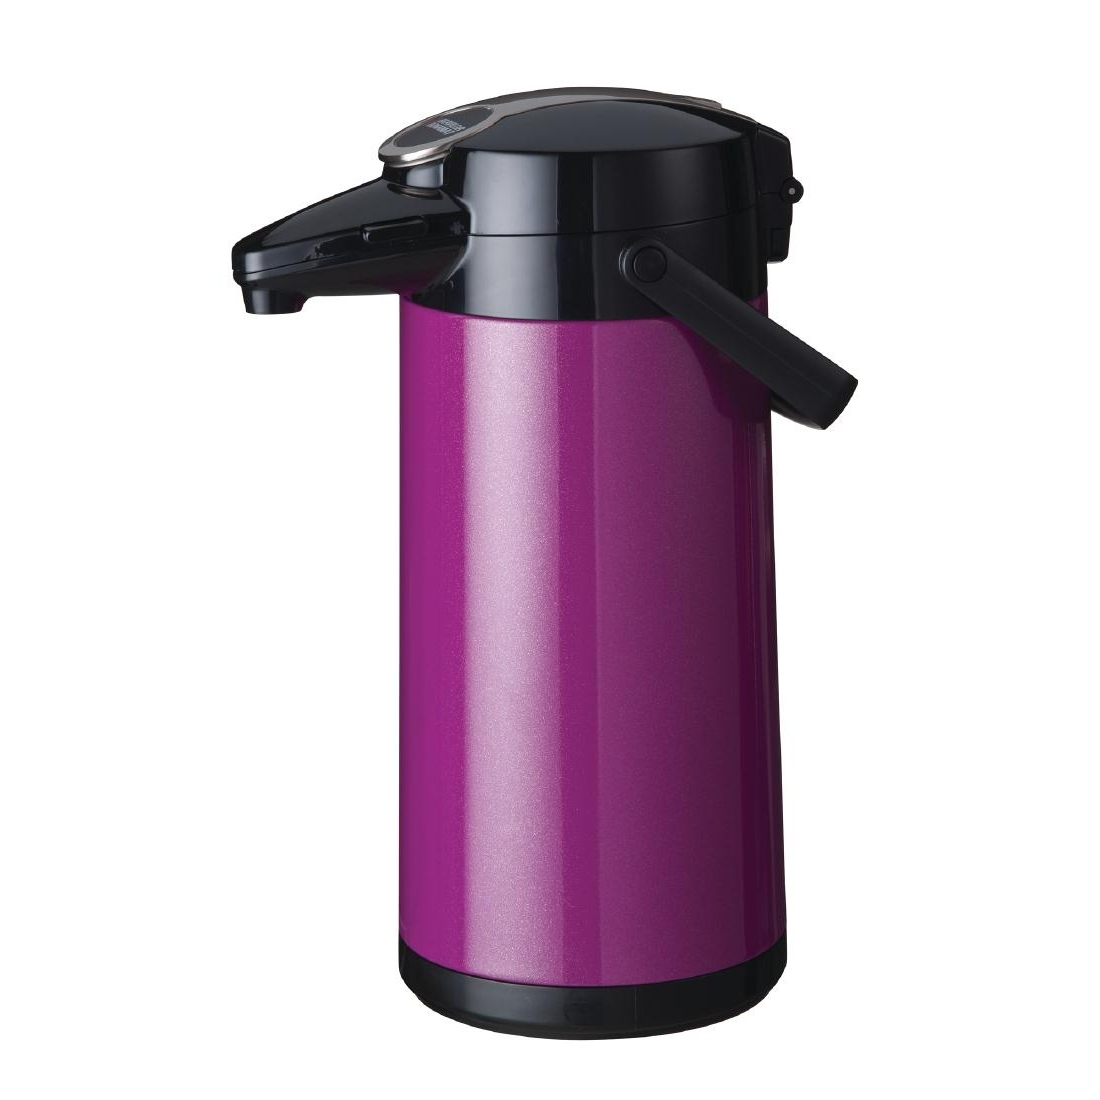 Bravilor Furento 2.2Ltr Airpot with Pump Action Metalic Purple